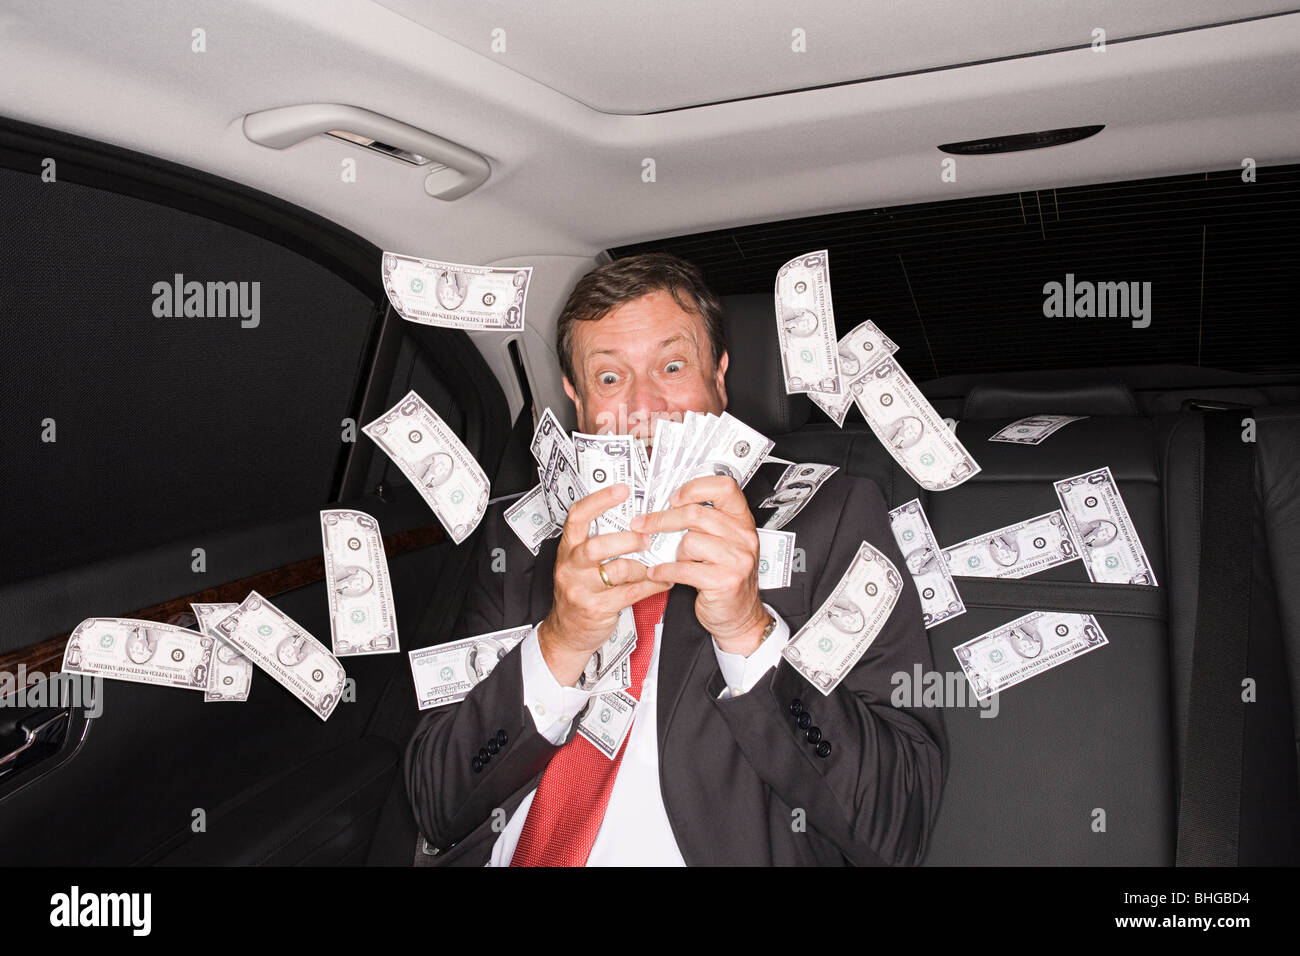 Wealthy businessman in the back of a car - Stock Image